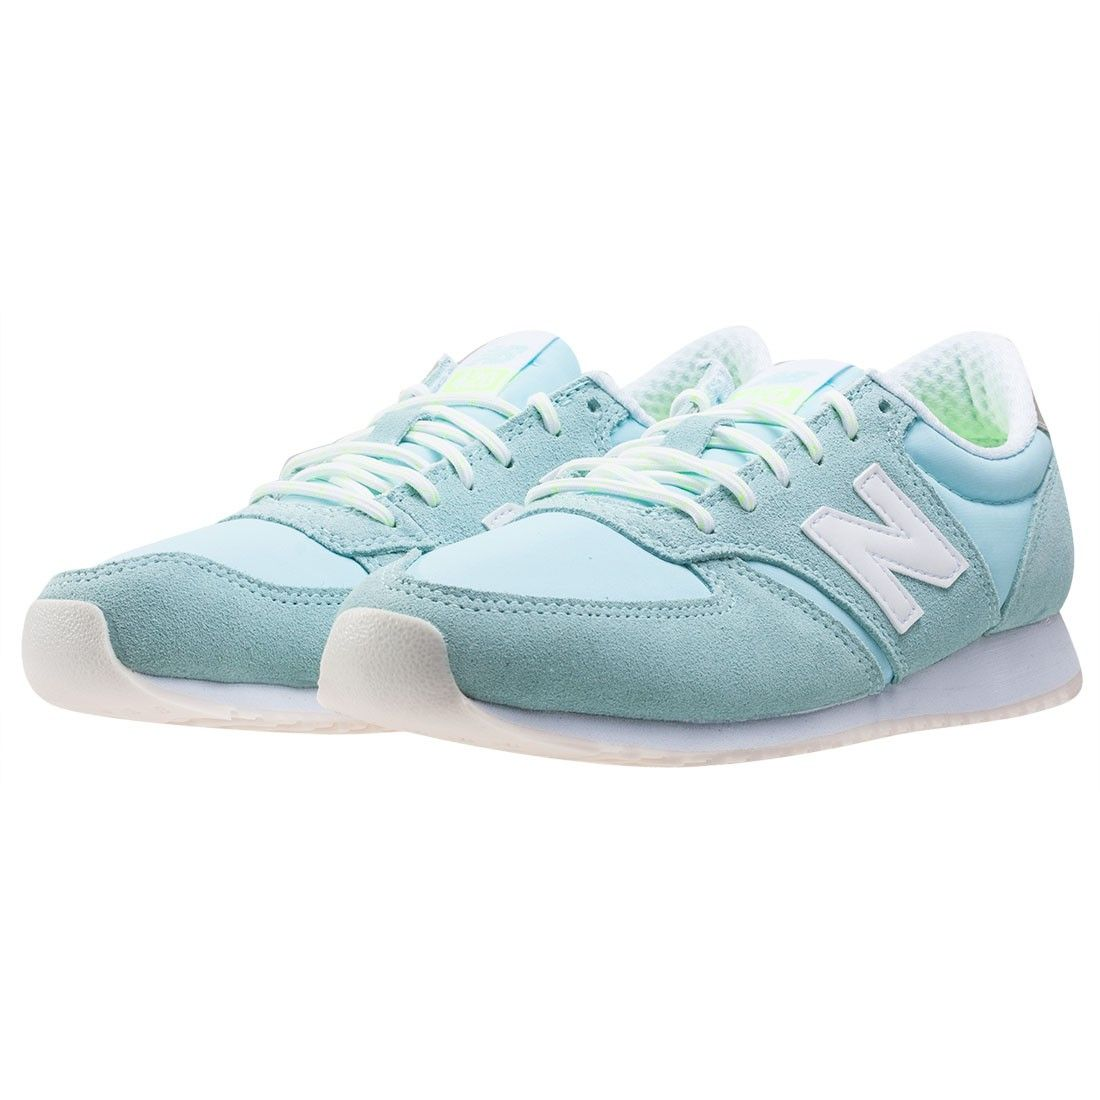 New Balance 420 V1 70's Classic Running Womens Trainers in